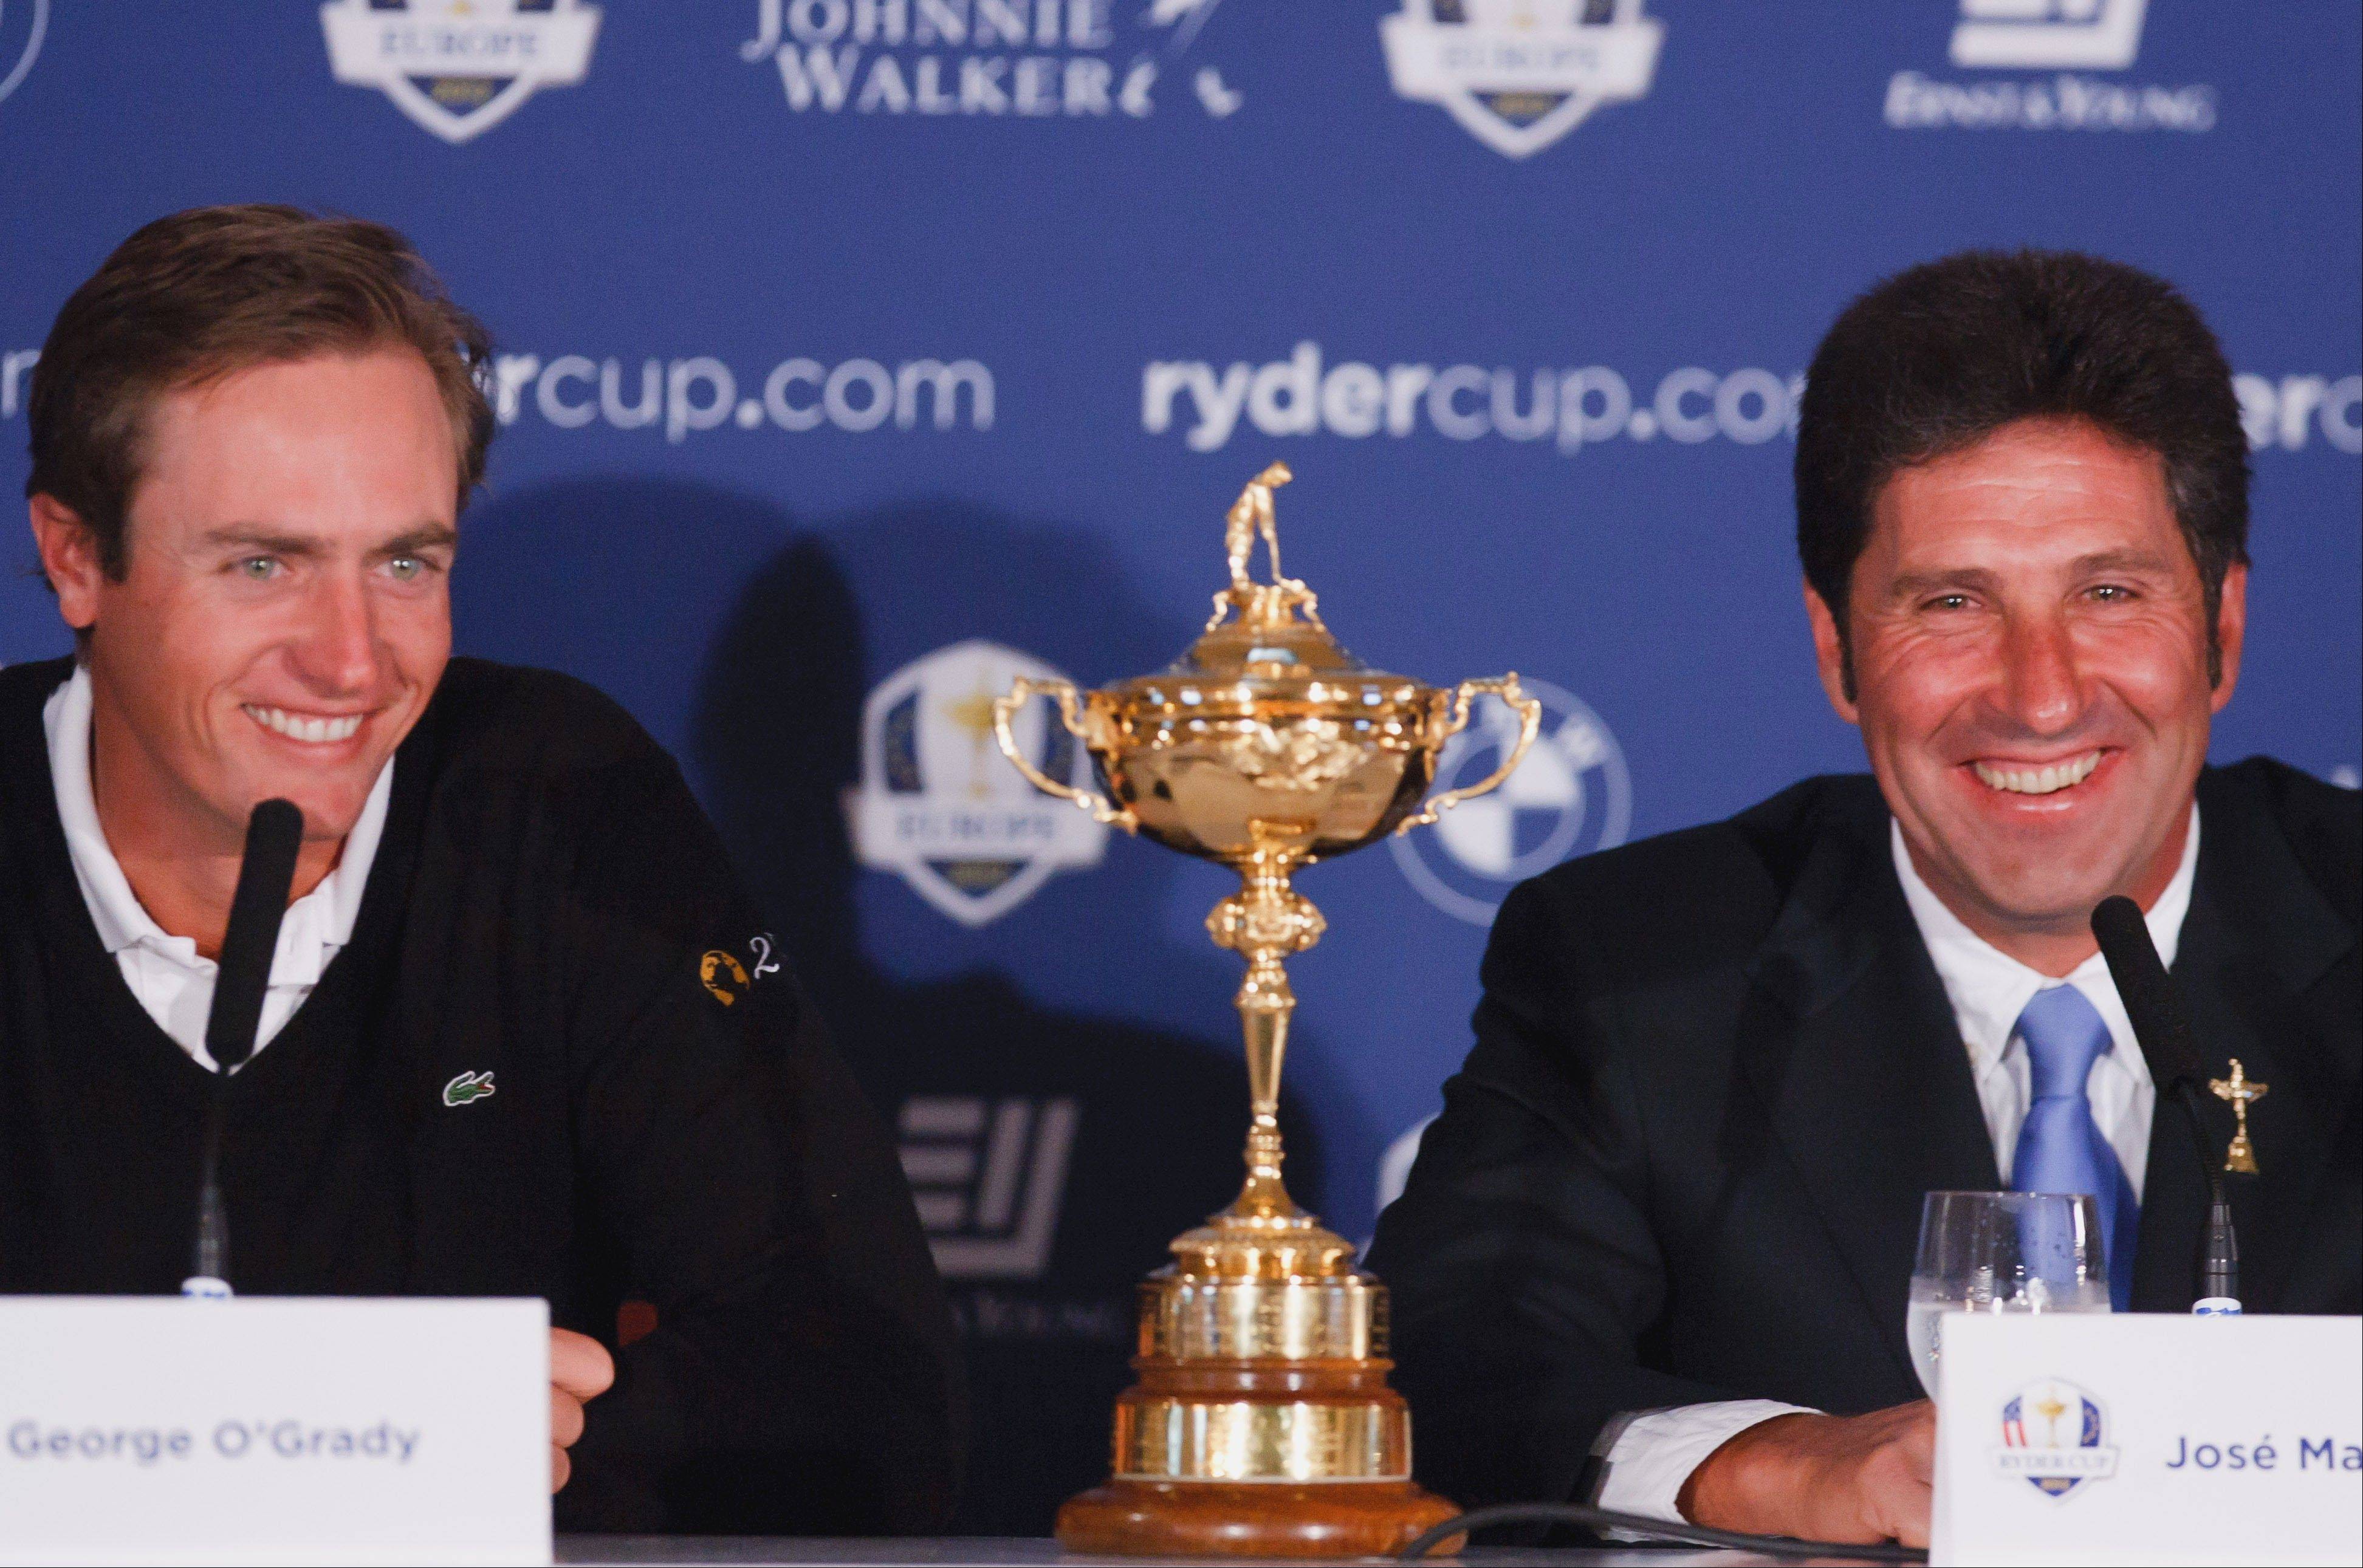 Poulter, Colsaerts join European Ryder Cup team